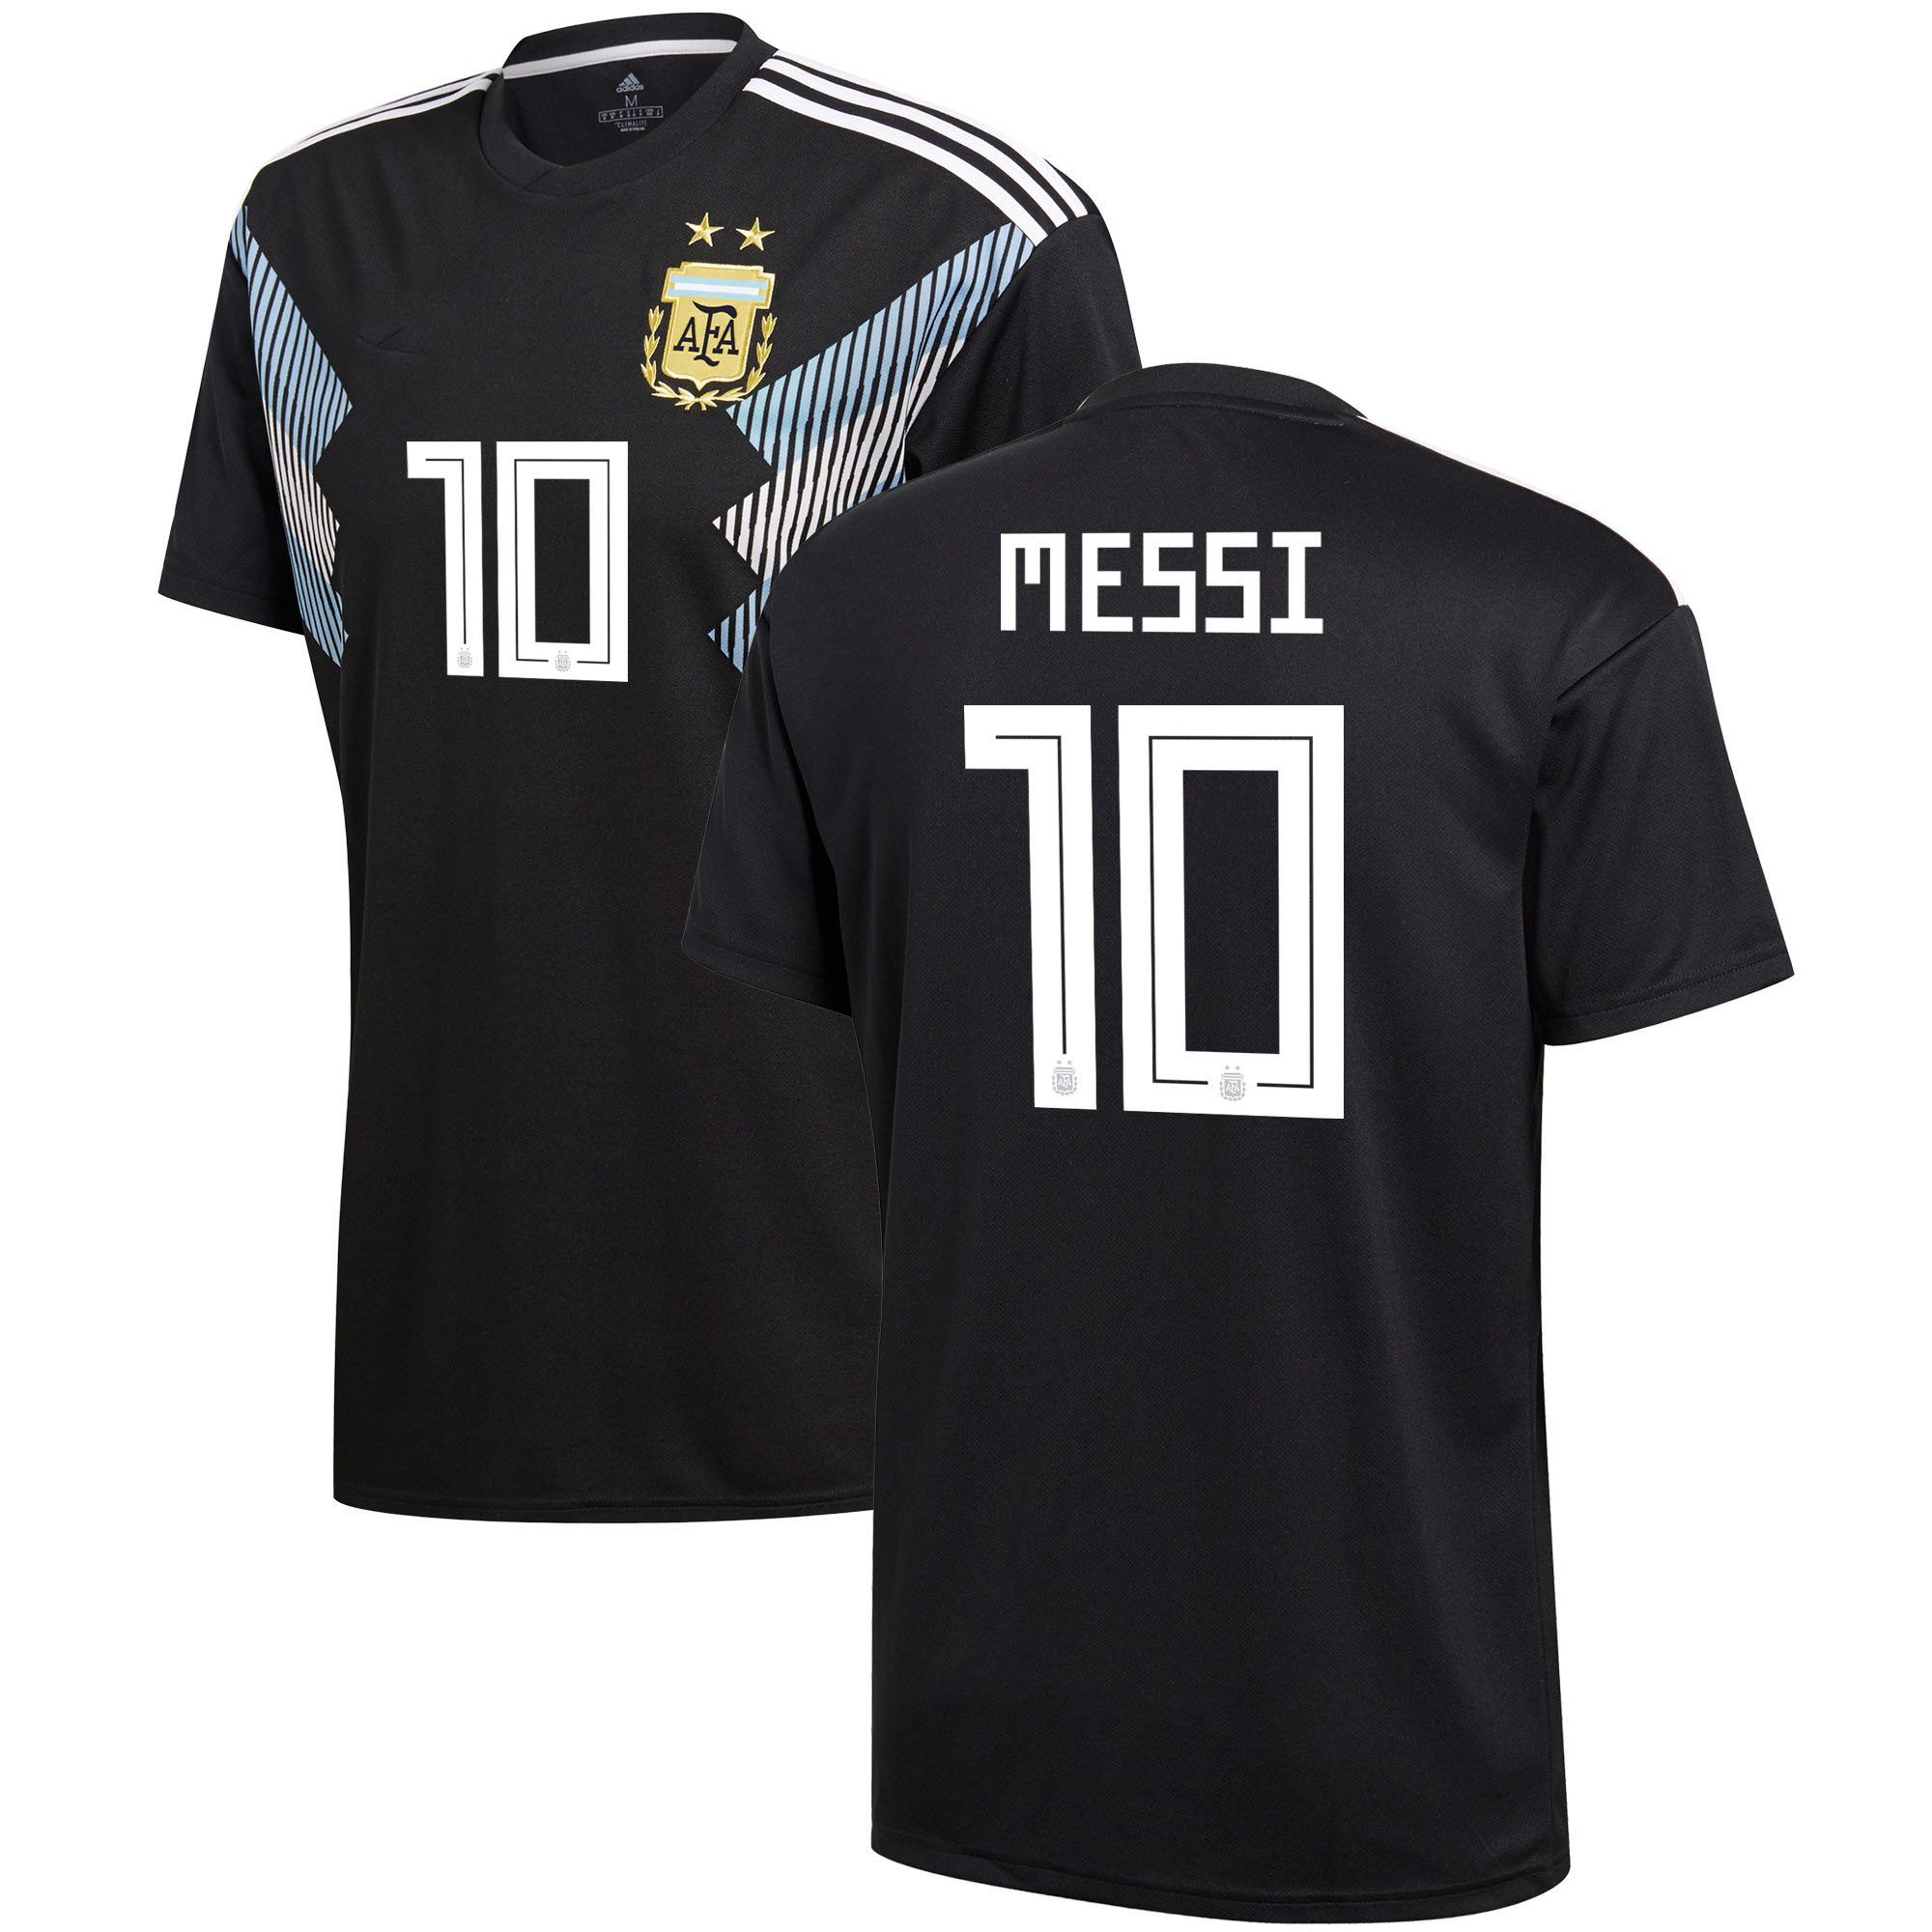 promo code 2029f 152f2 Best Selling Football Shirts In The World